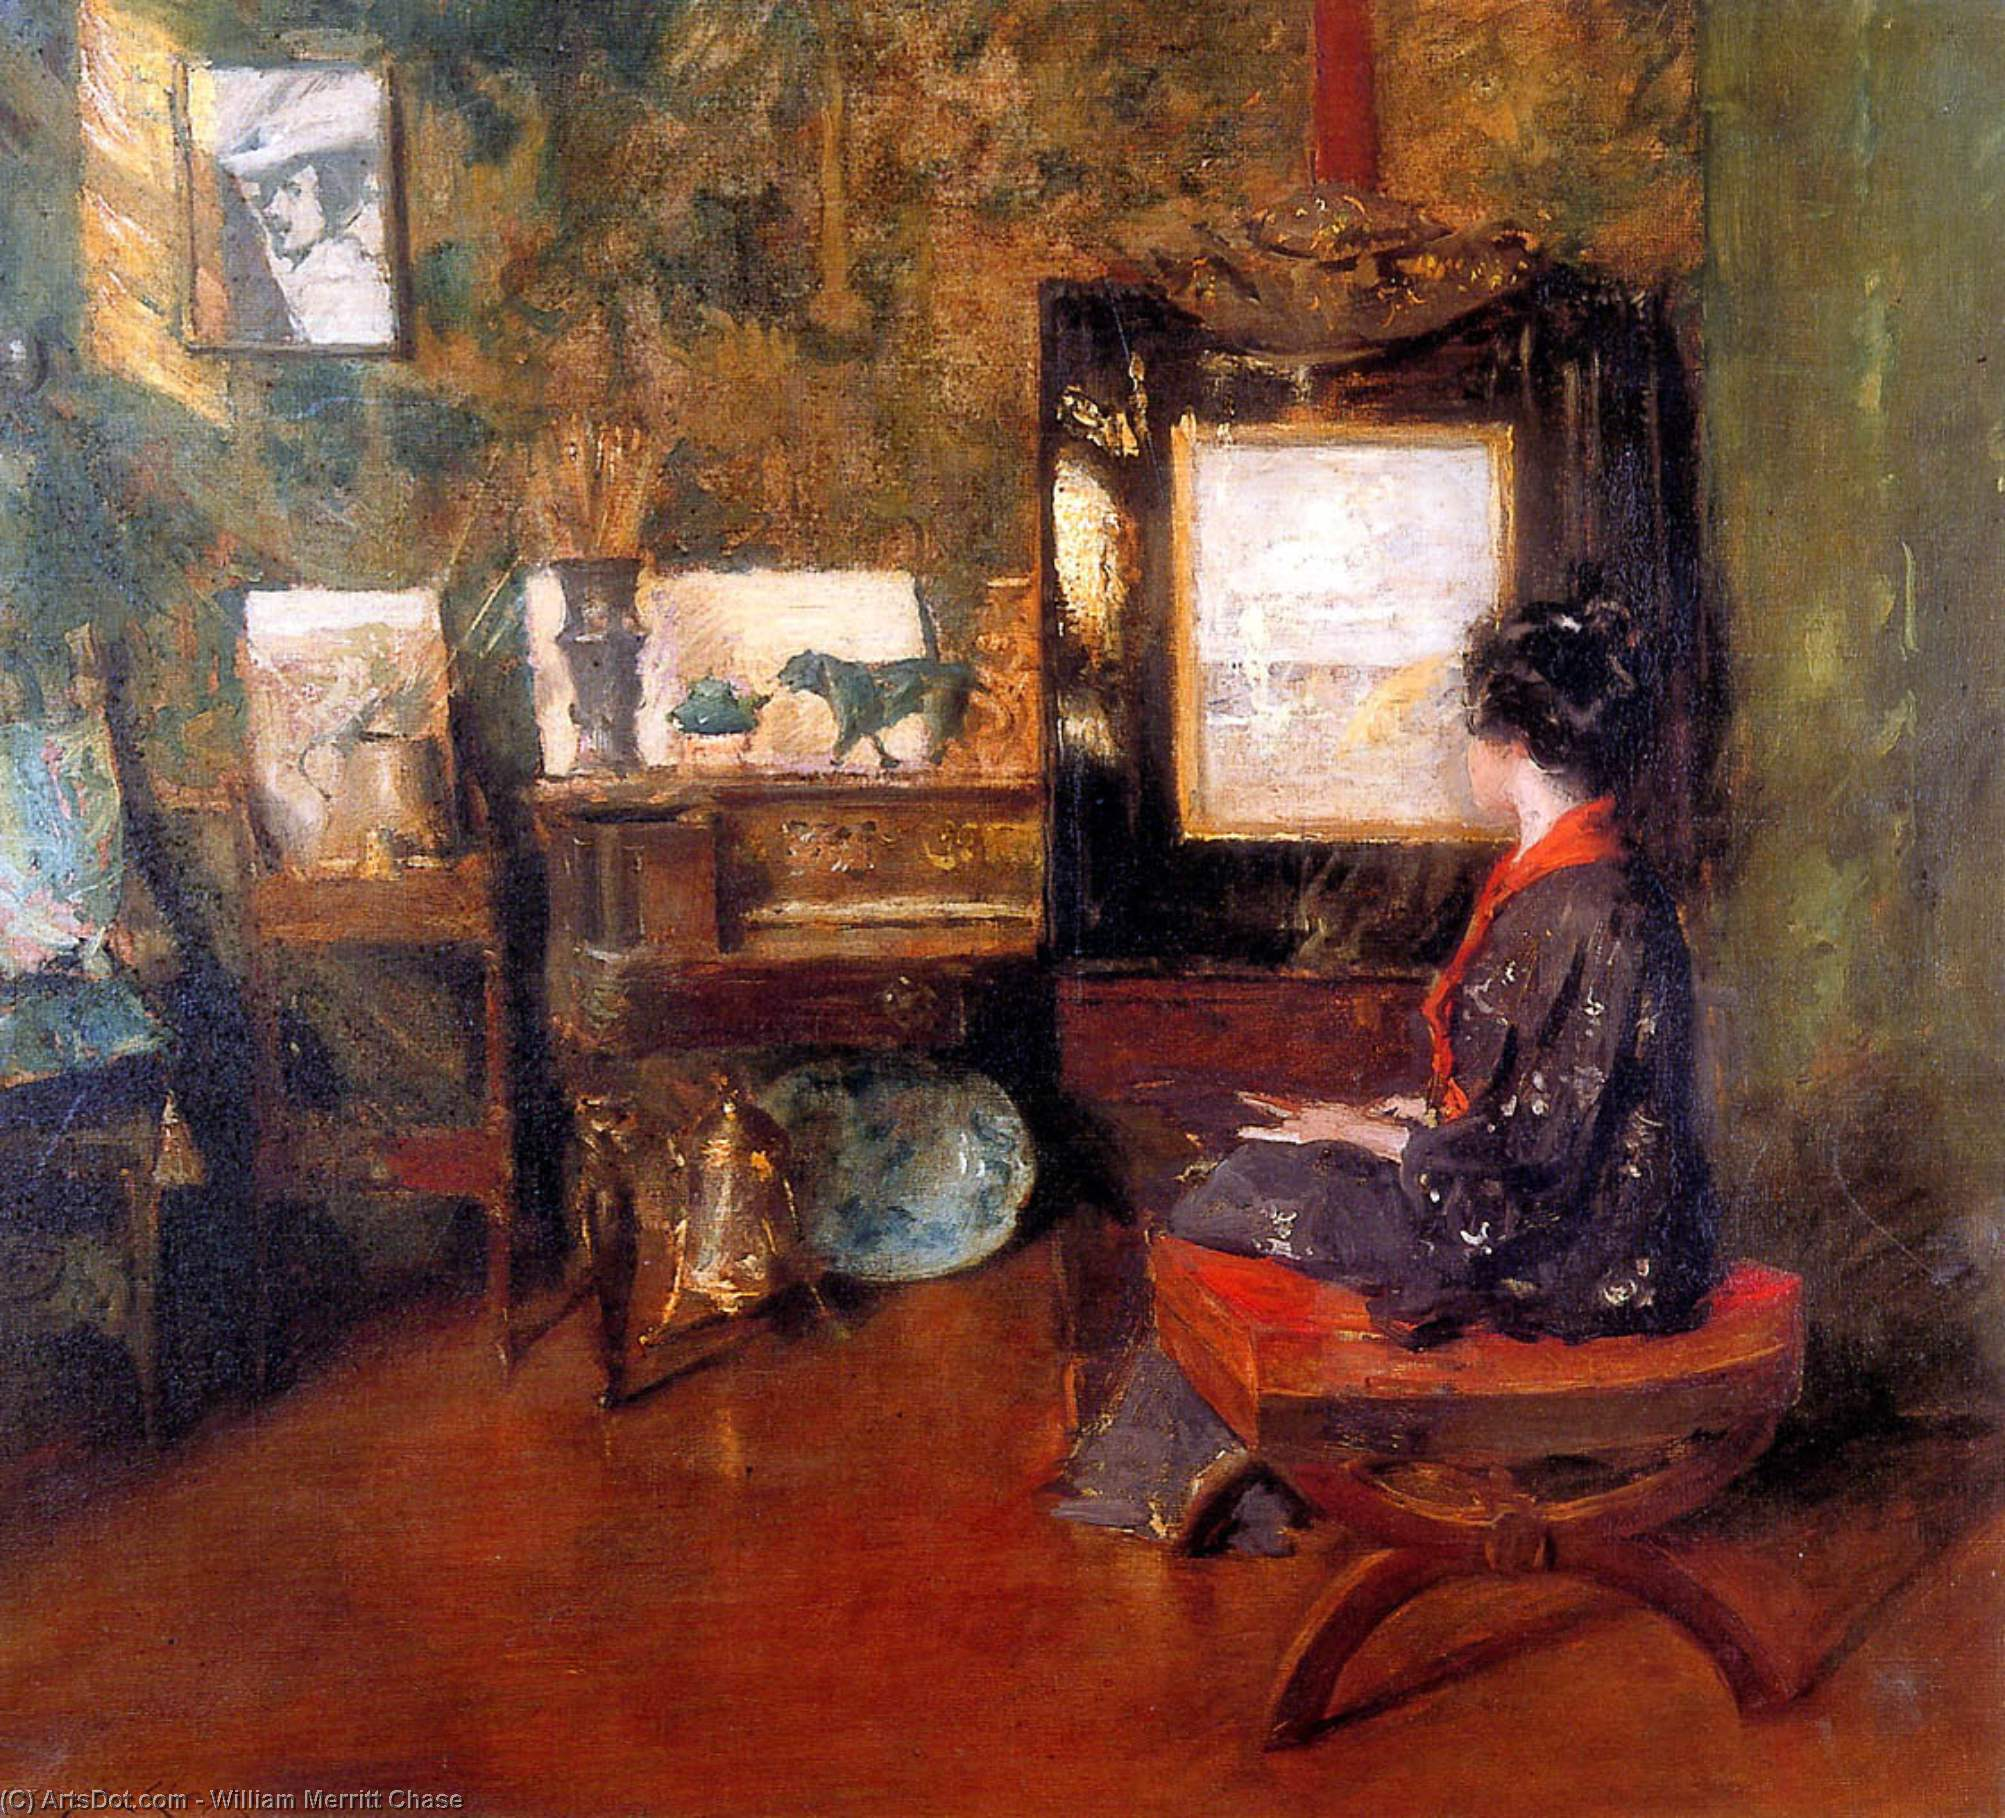 Alicia en el país estudio en shinnecock isla grande Terraza de William Merritt Chase (1849-1916, United States)